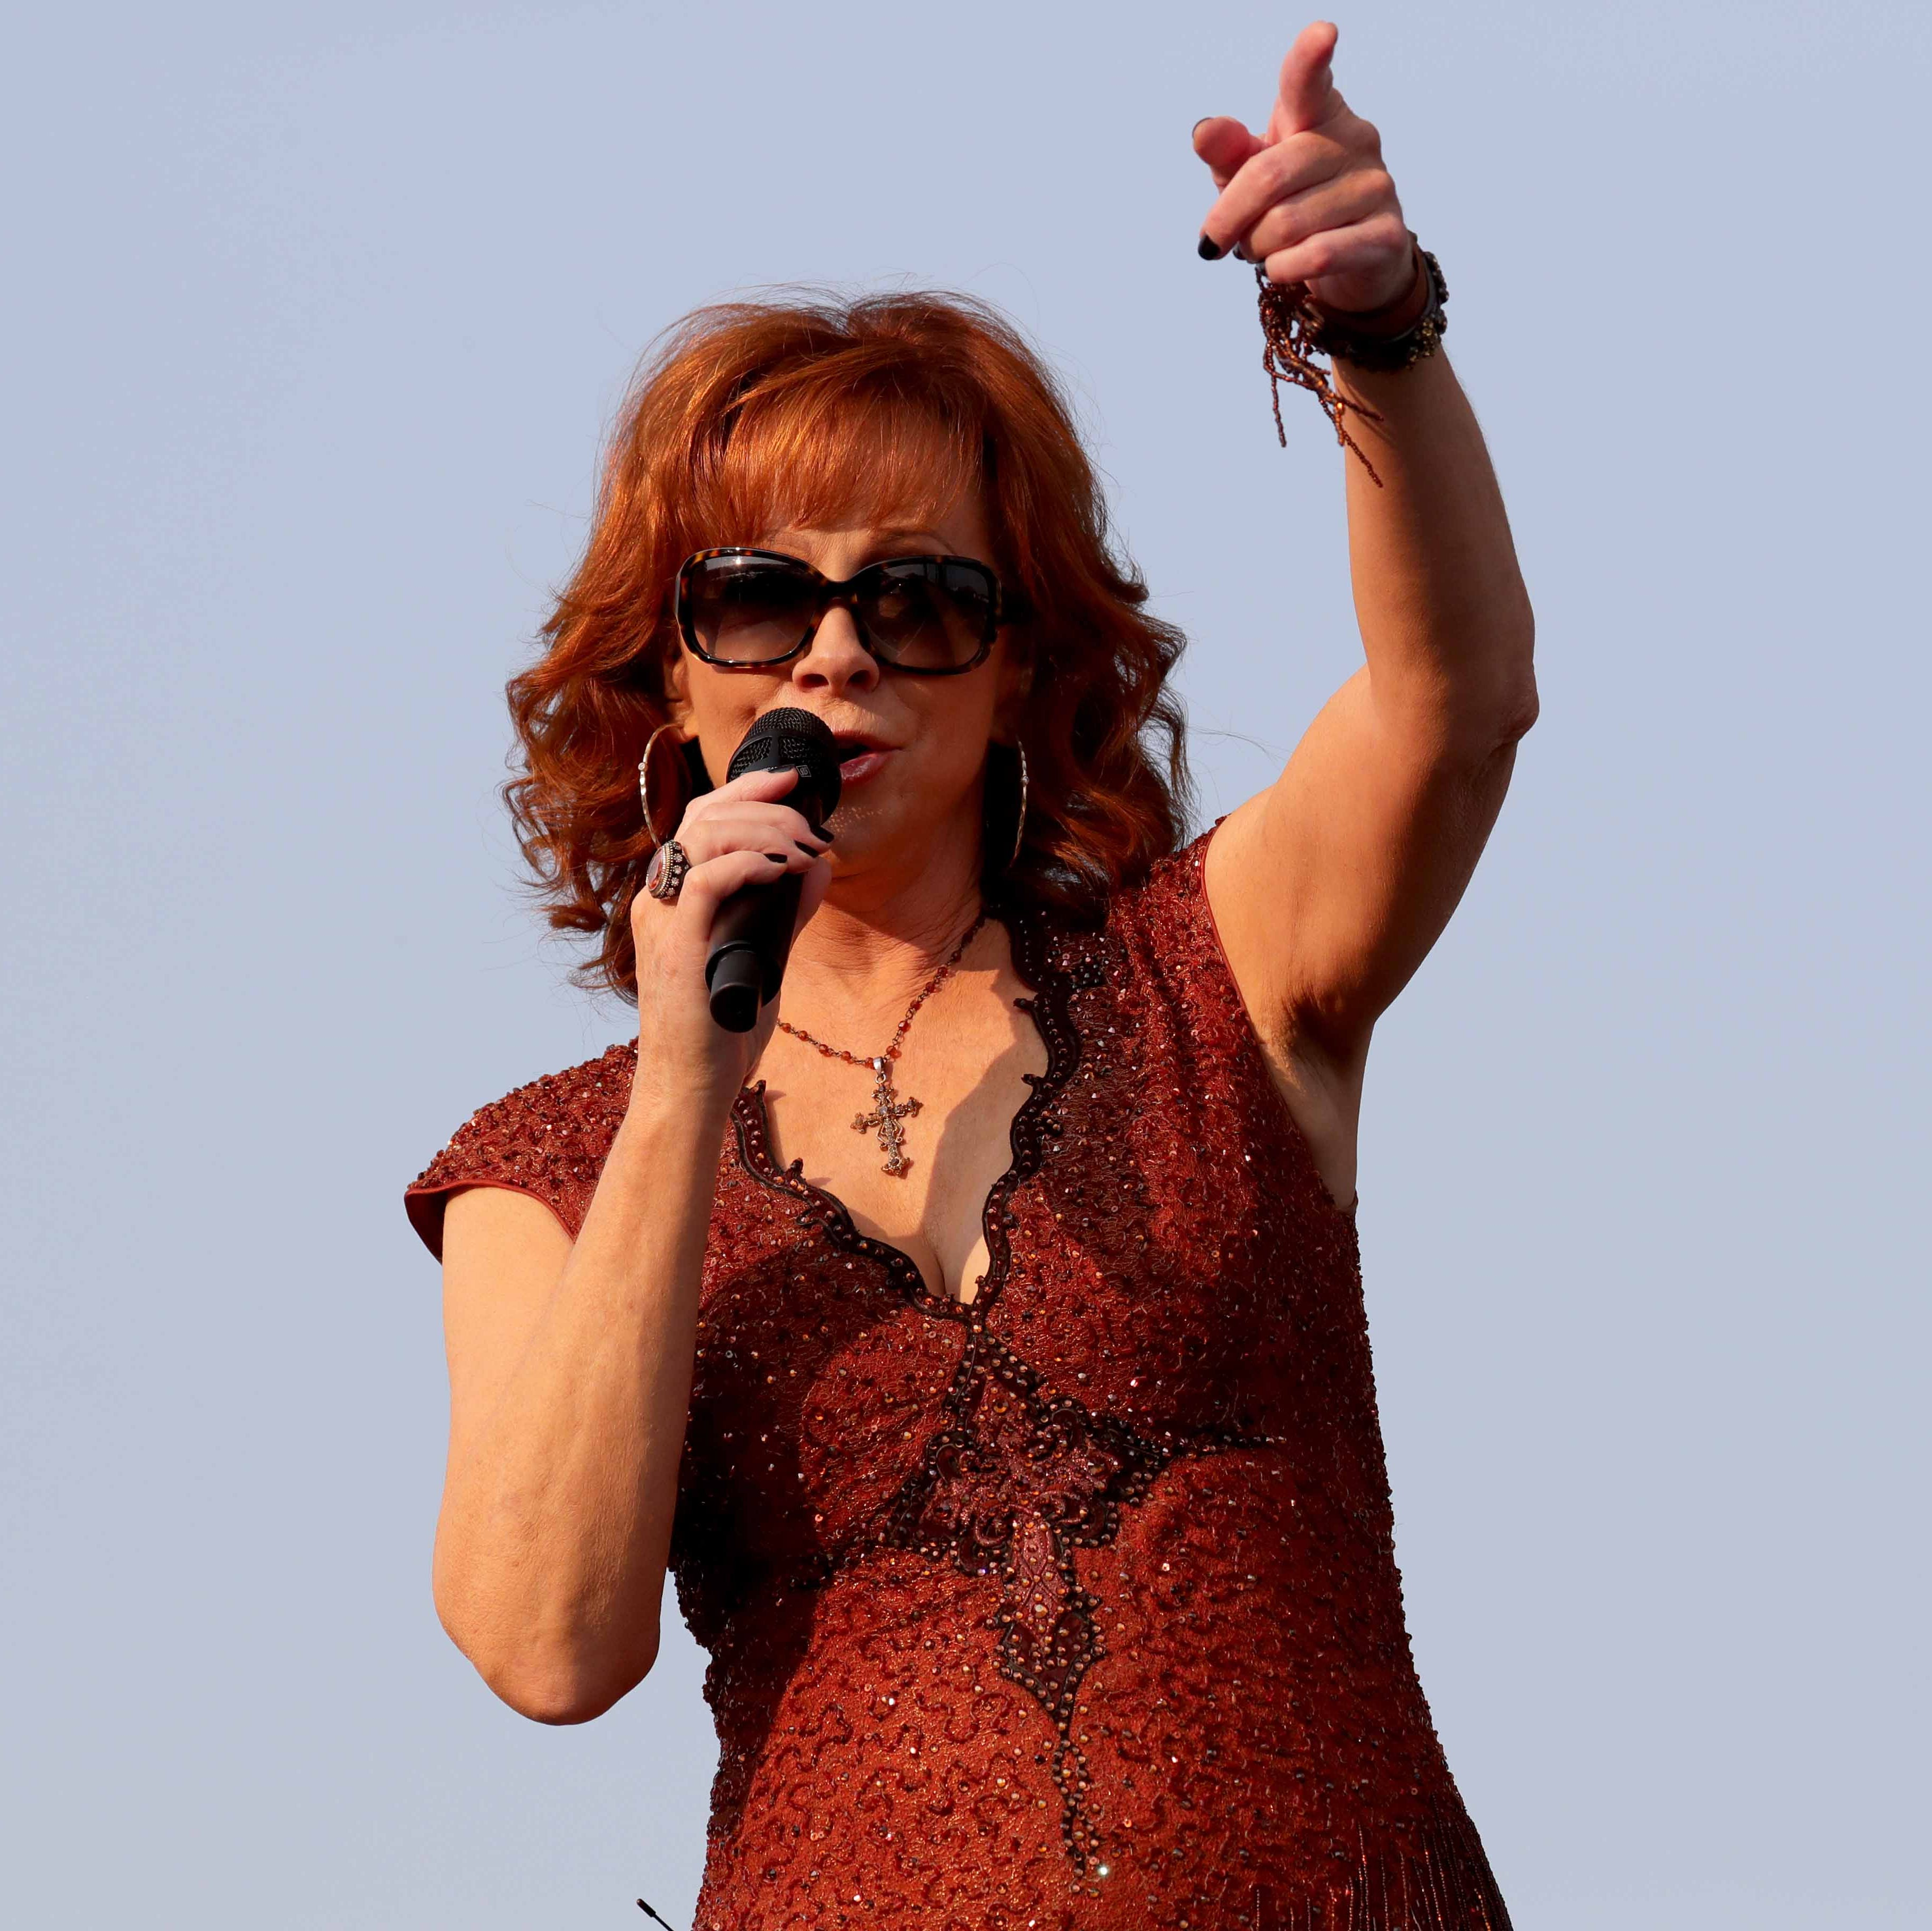 Reba McEntire shows she's a legend, while staying down-to-earth, at Wisconsin State Fair